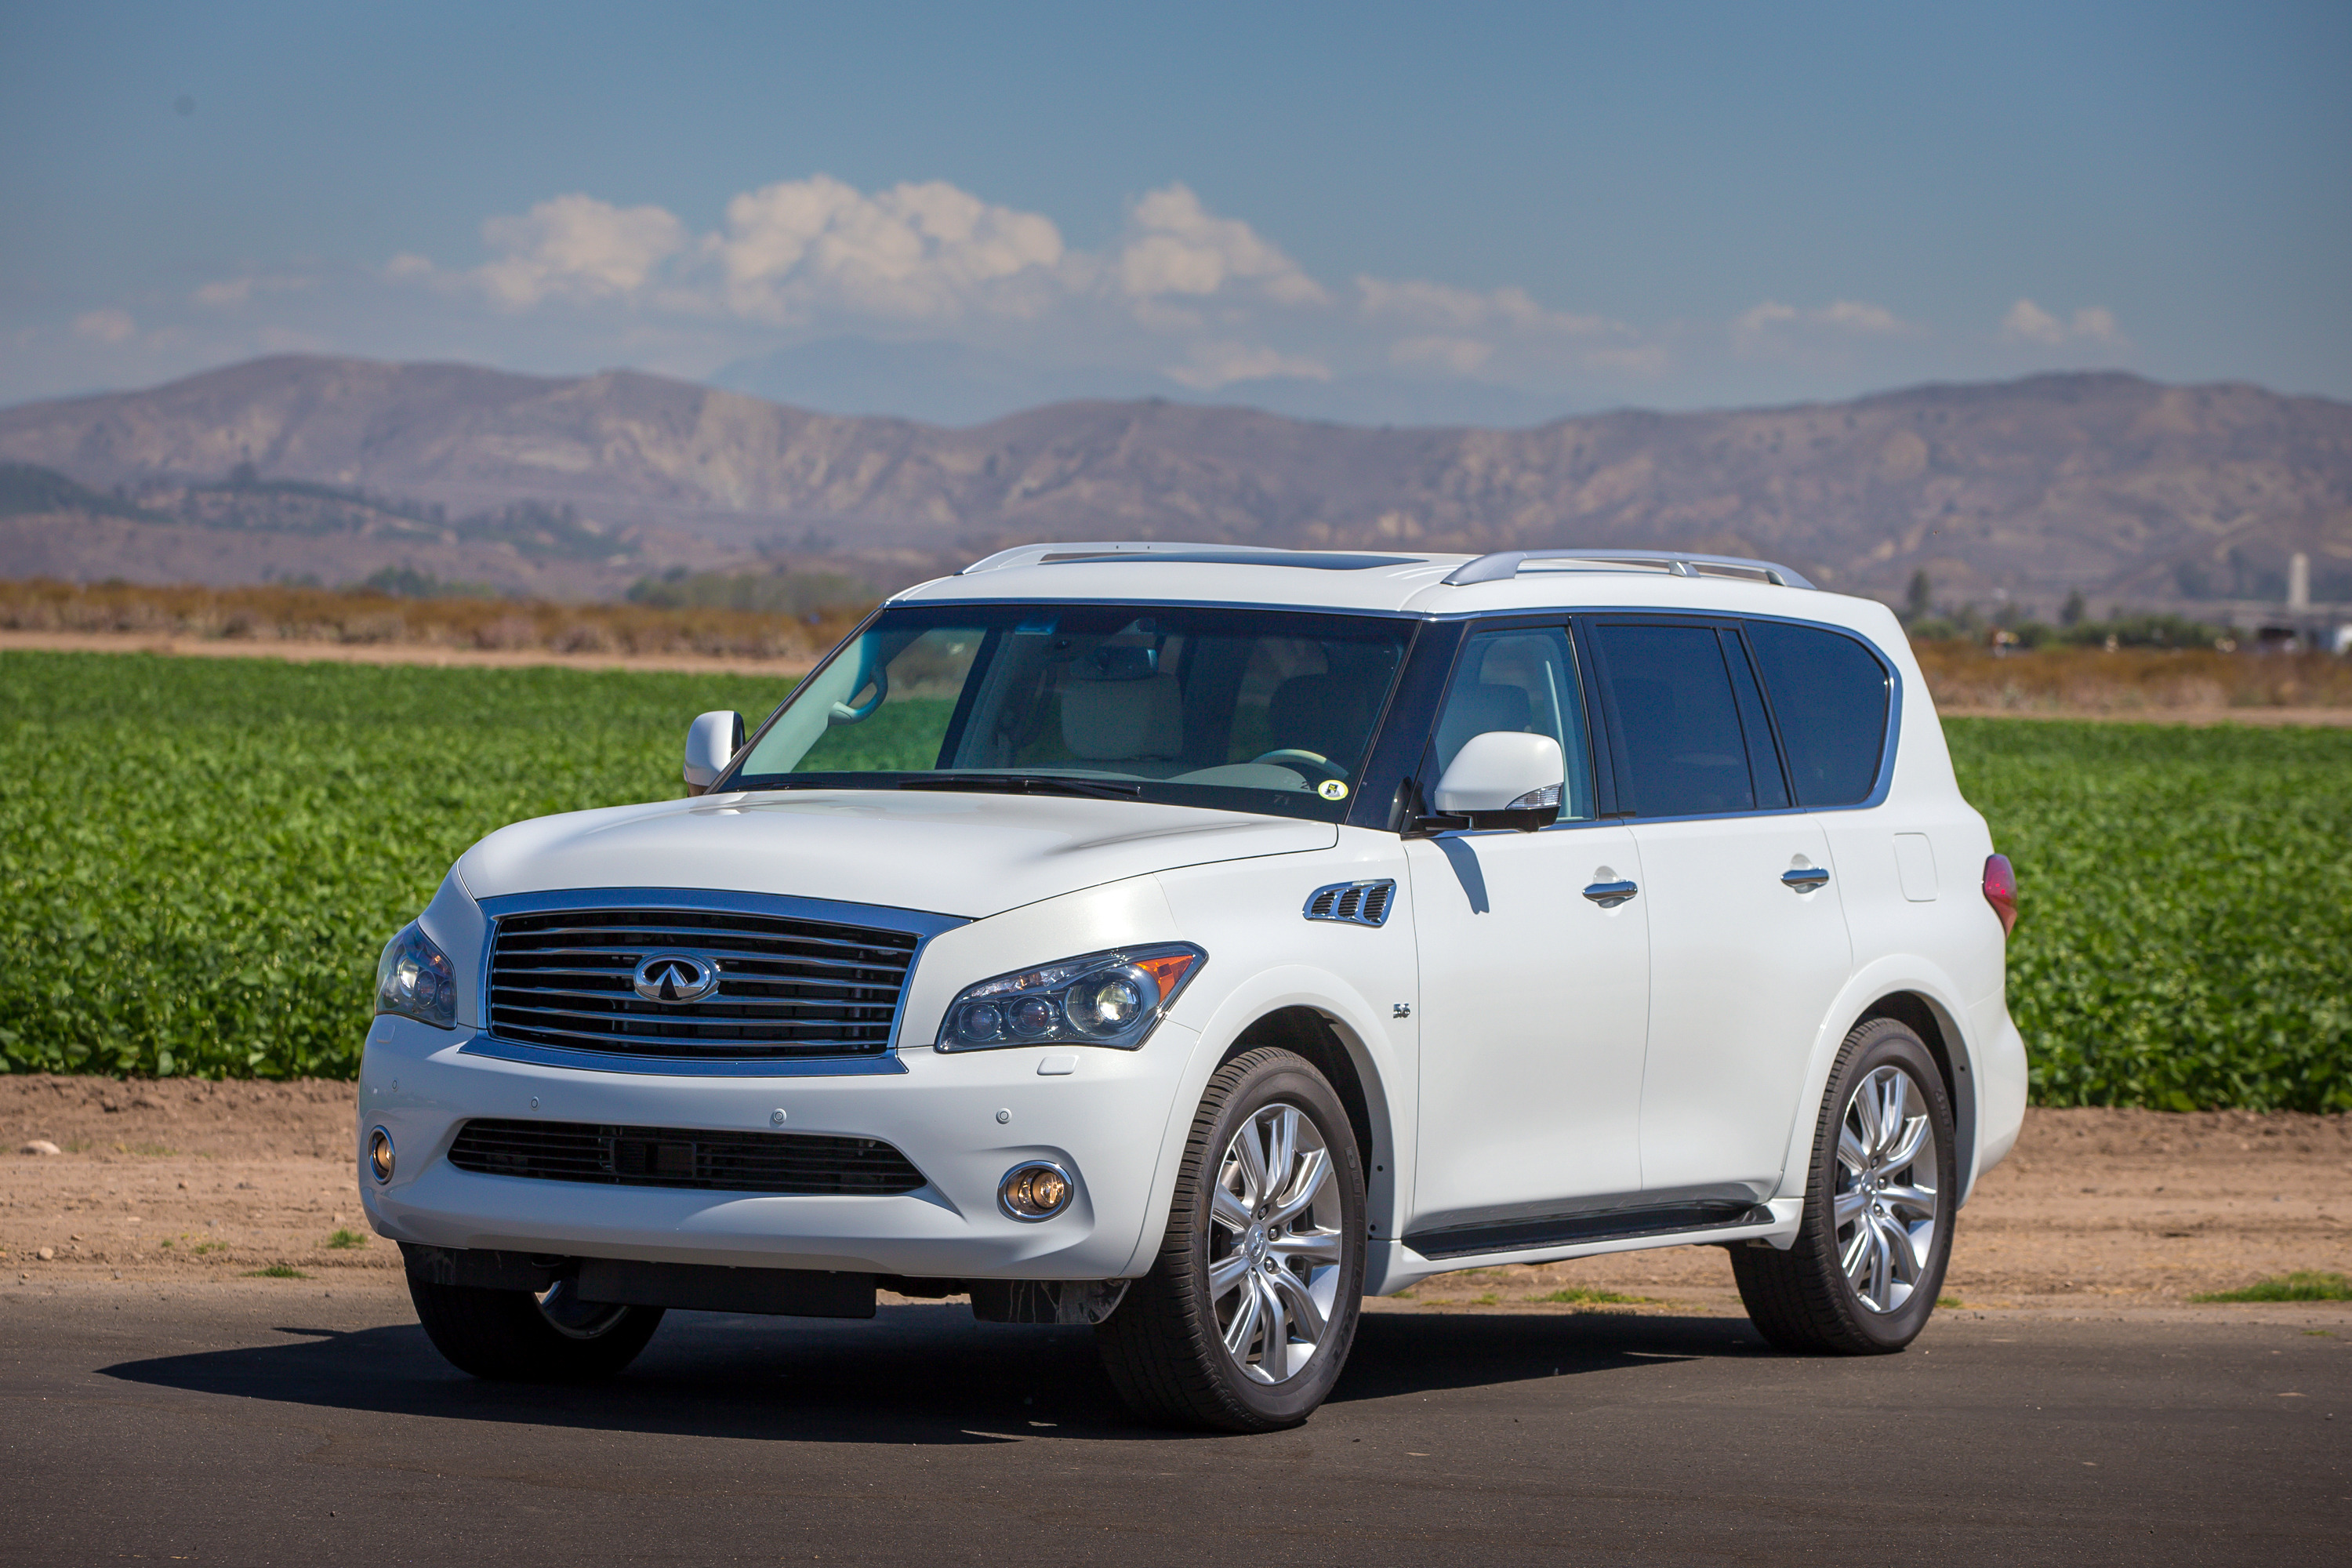 The Rebranding Process Of Infiniti QX80 #7